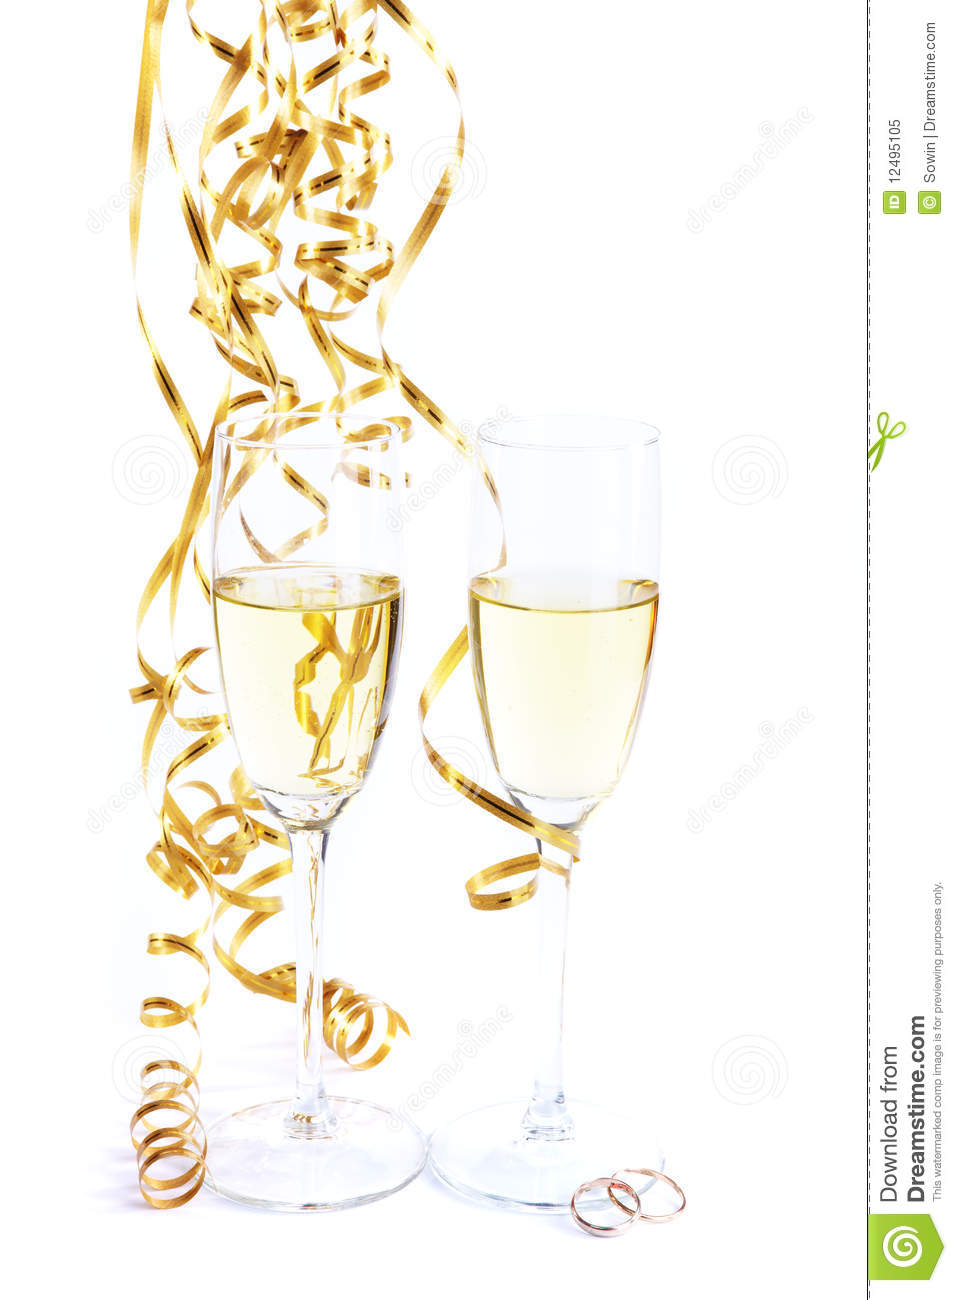 royalty free stock photo two wine glasses wedding rings image wedding wine glasses Two wine glasses and wedding rings